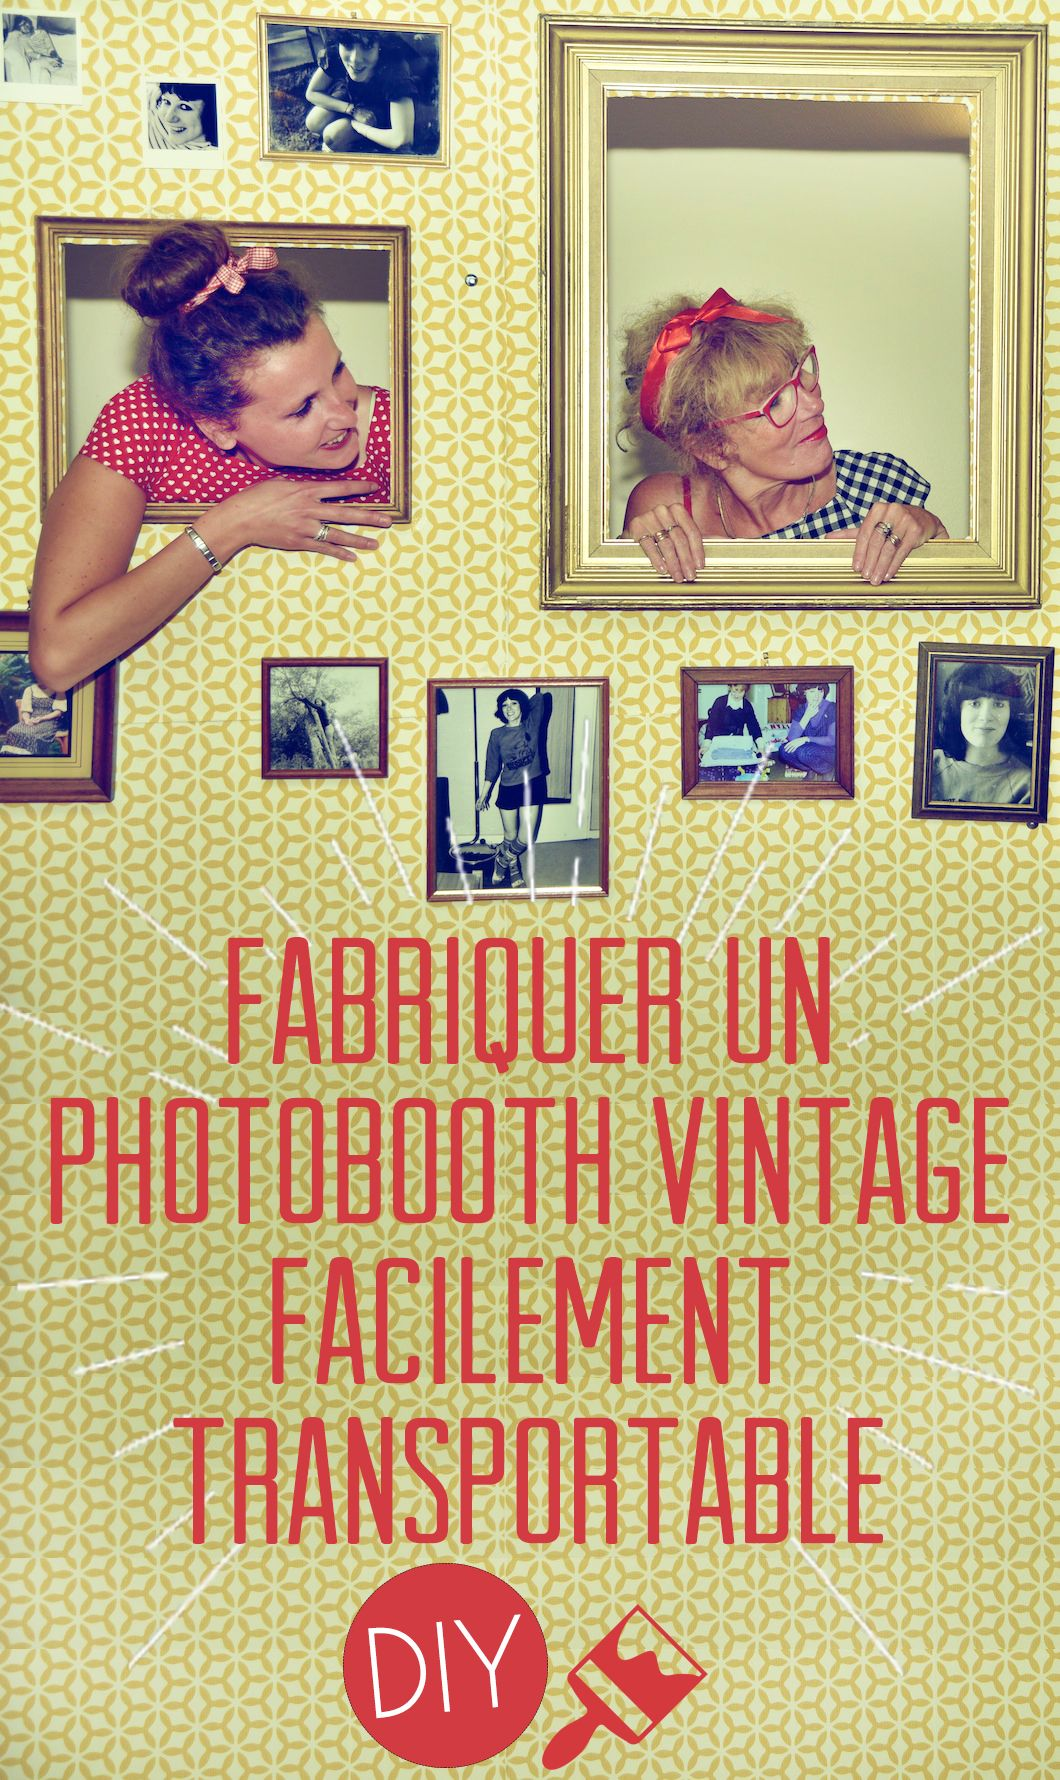 diy fabriquer un photobooth vintage facilement transportable mariage vintage et bricolage. Black Bedroom Furniture Sets. Home Design Ideas